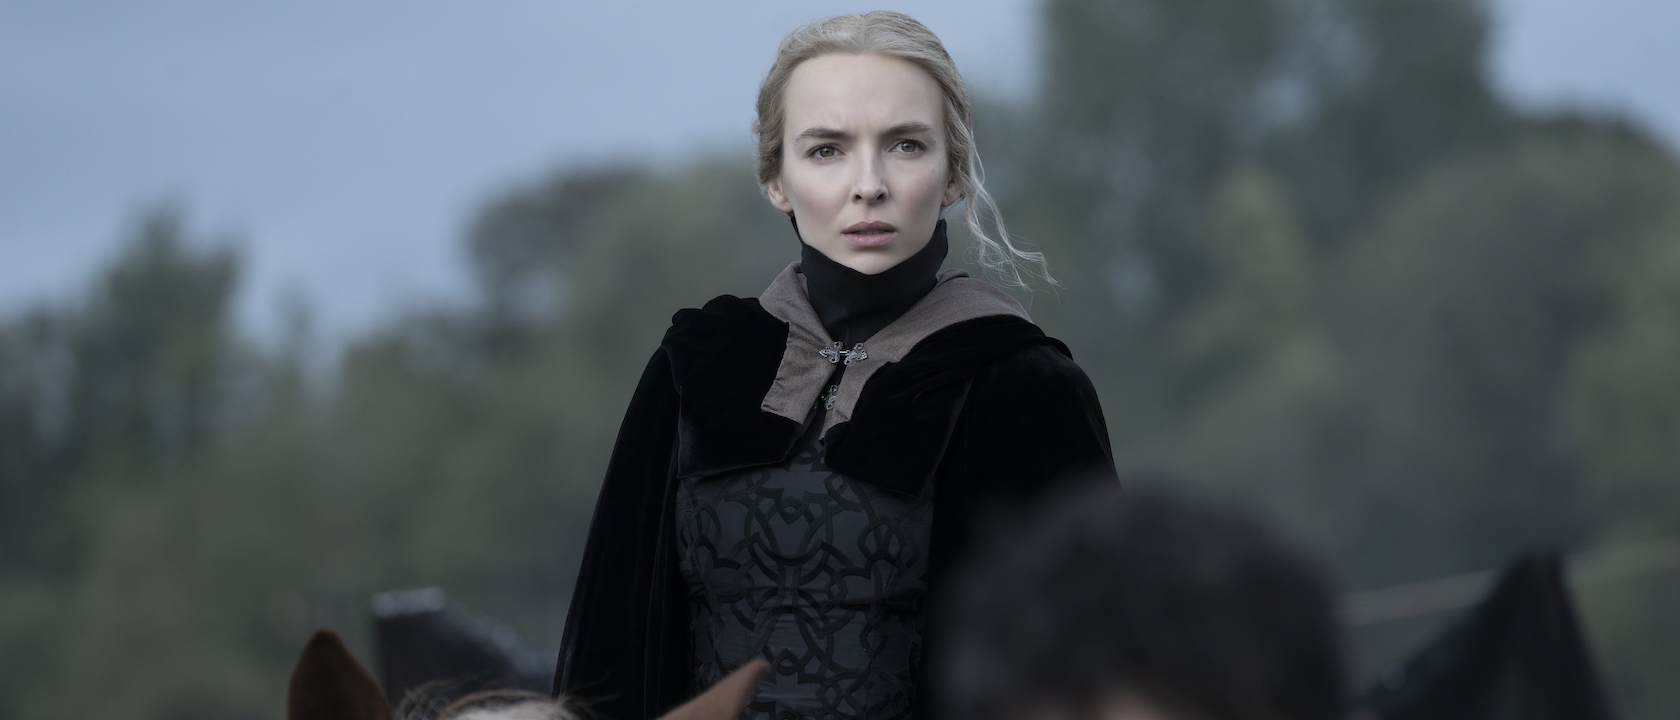 The Last Duel Review: Jodie Comer's Knockout Performance Brings Nuance To Ben Affleck And Matt Damon's Stiff Swordplay